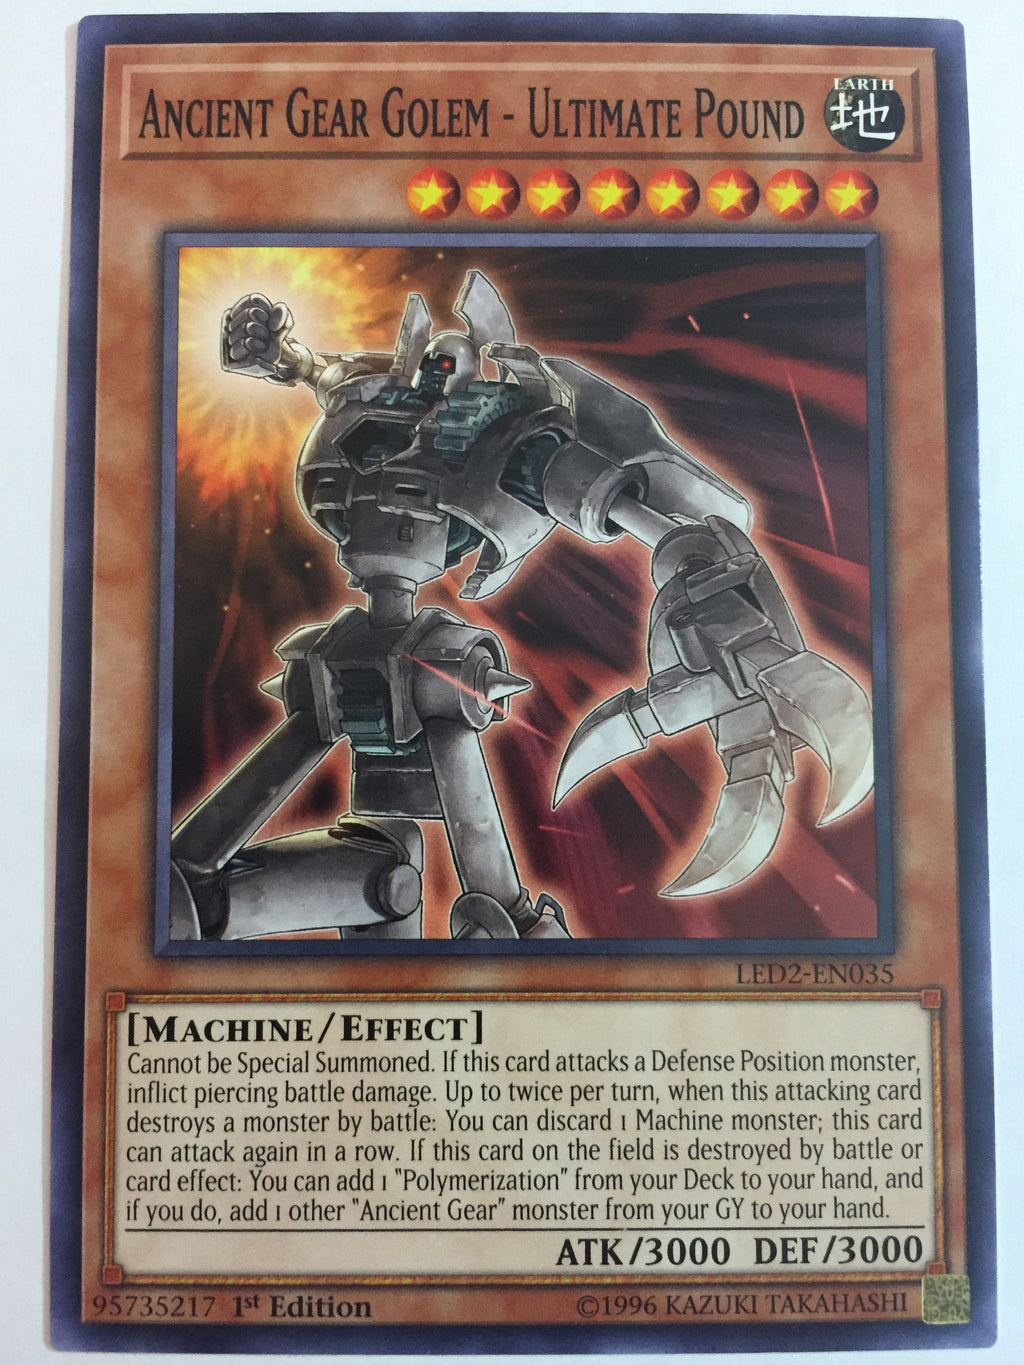 Ancient Gear Golem - Ultimate Pound - Common - LED2-EN035 - 1st